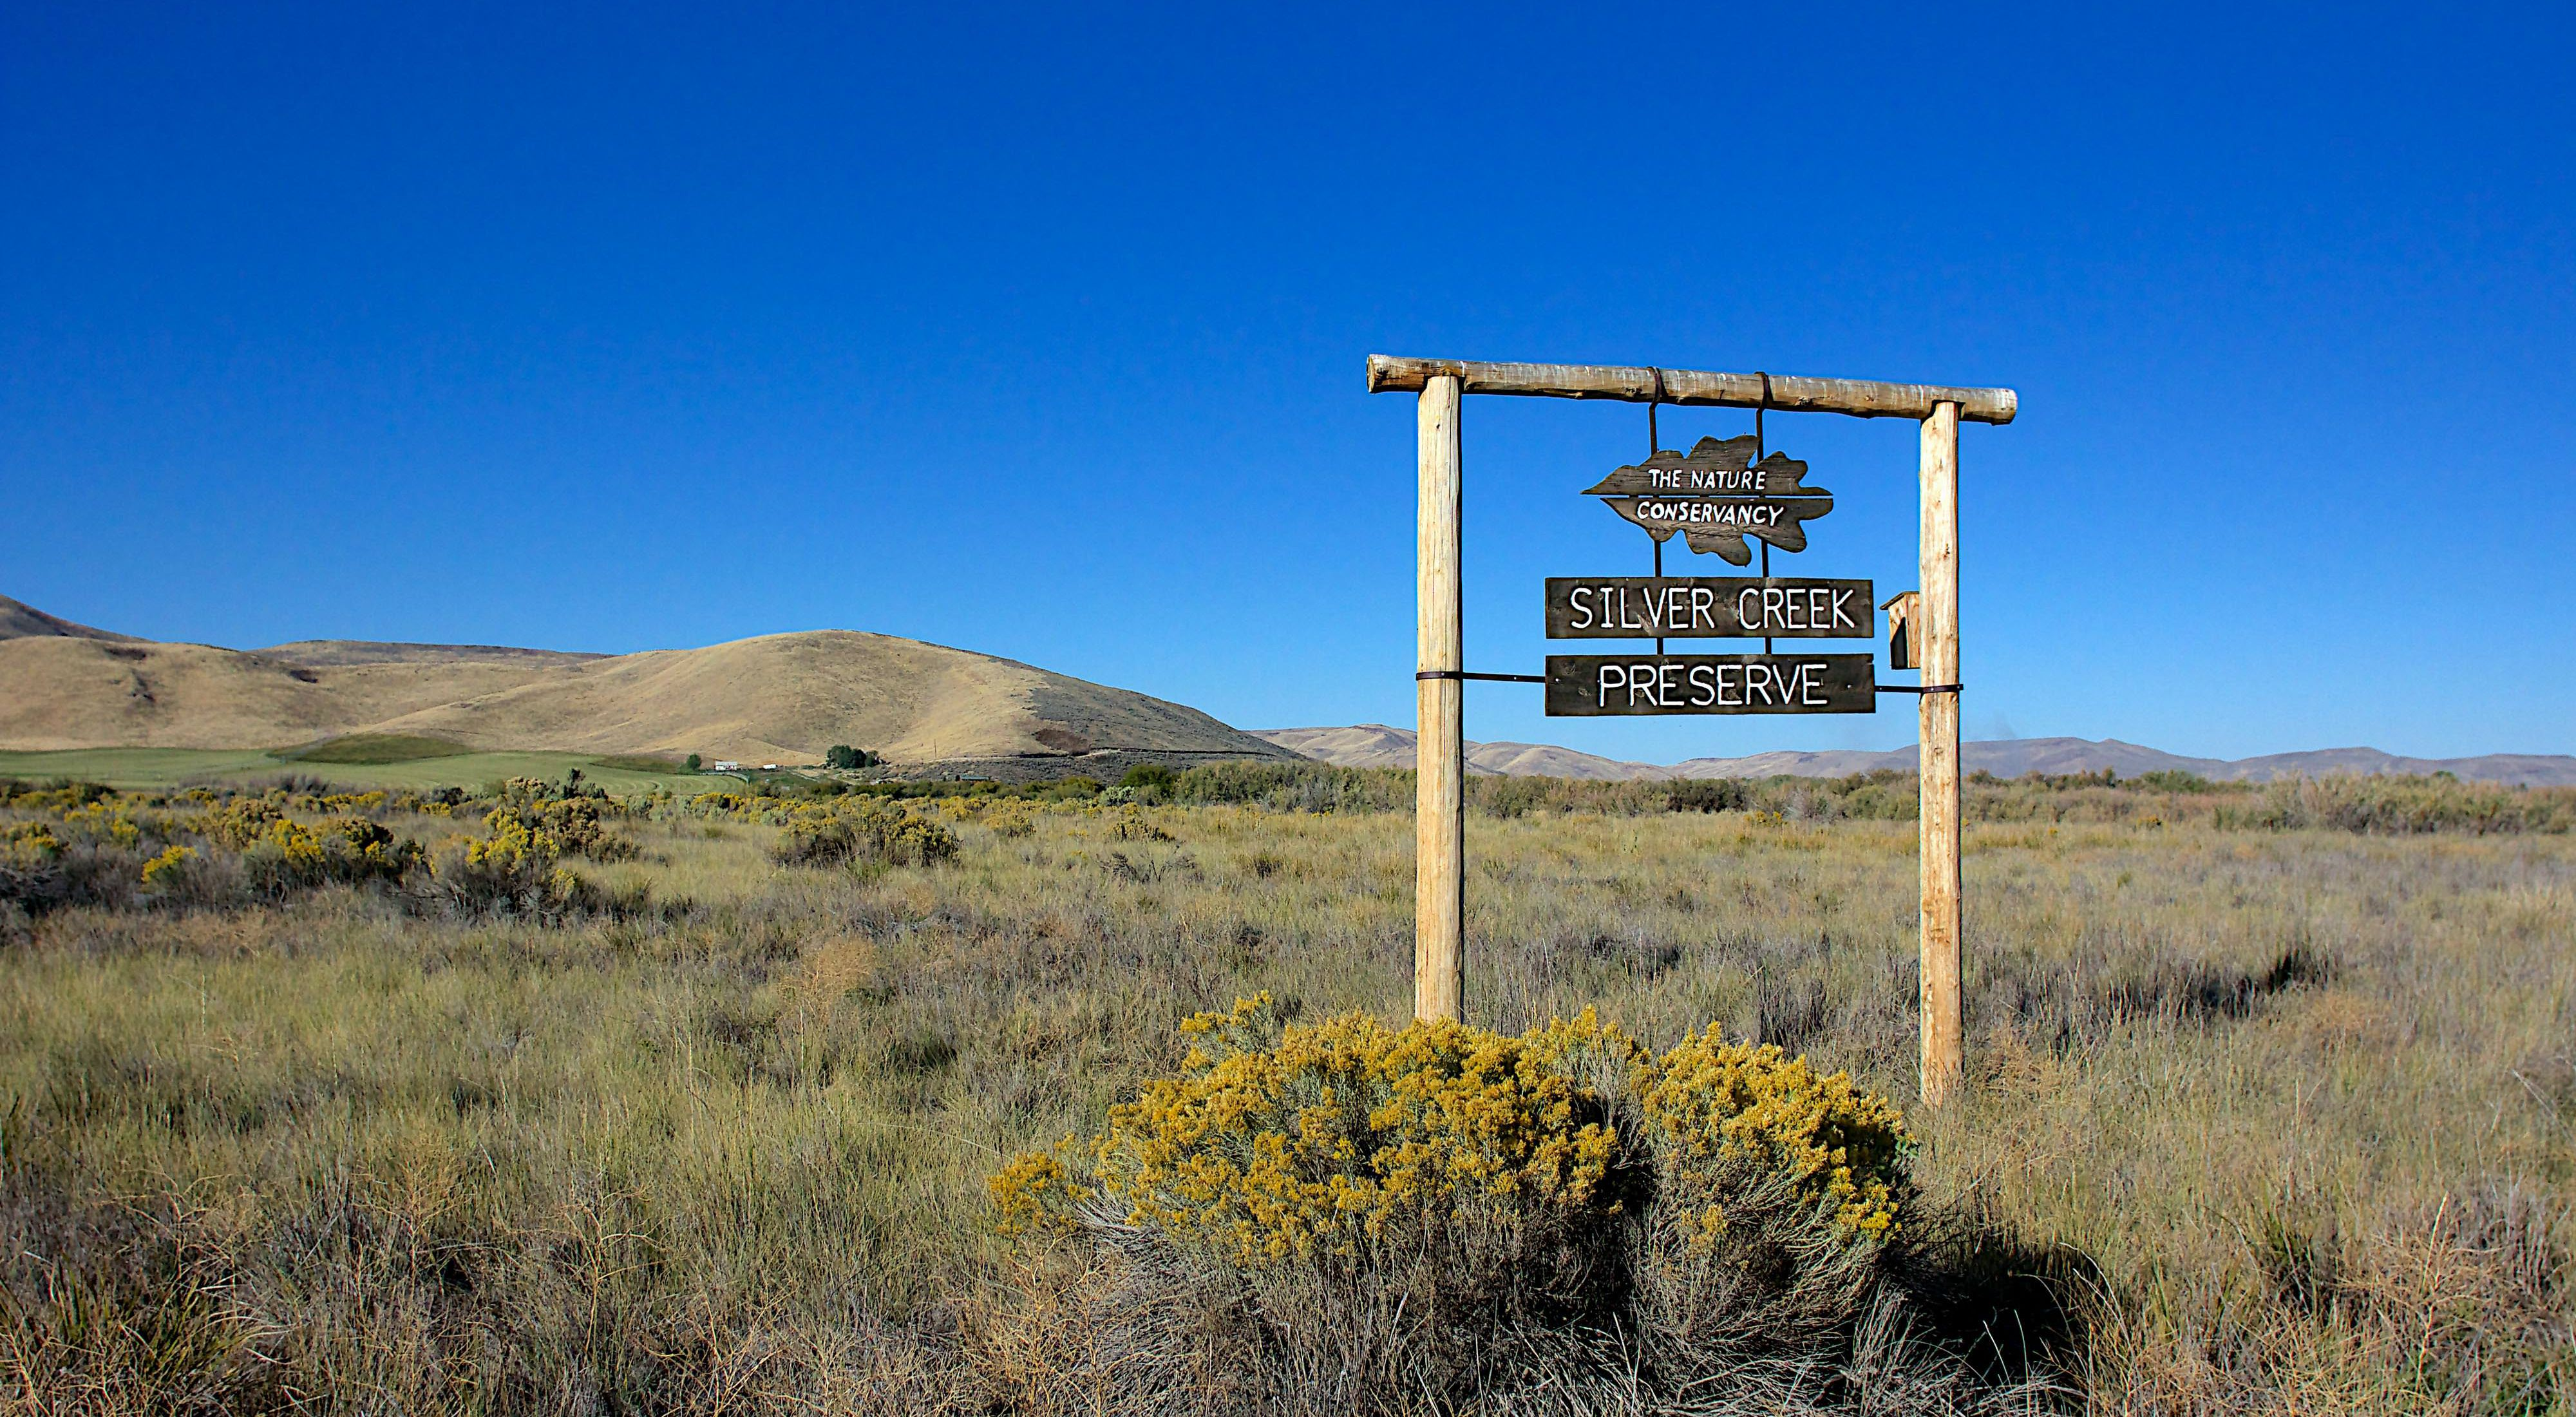 Photo of sagebrush and Silver Creek Preserve sign.